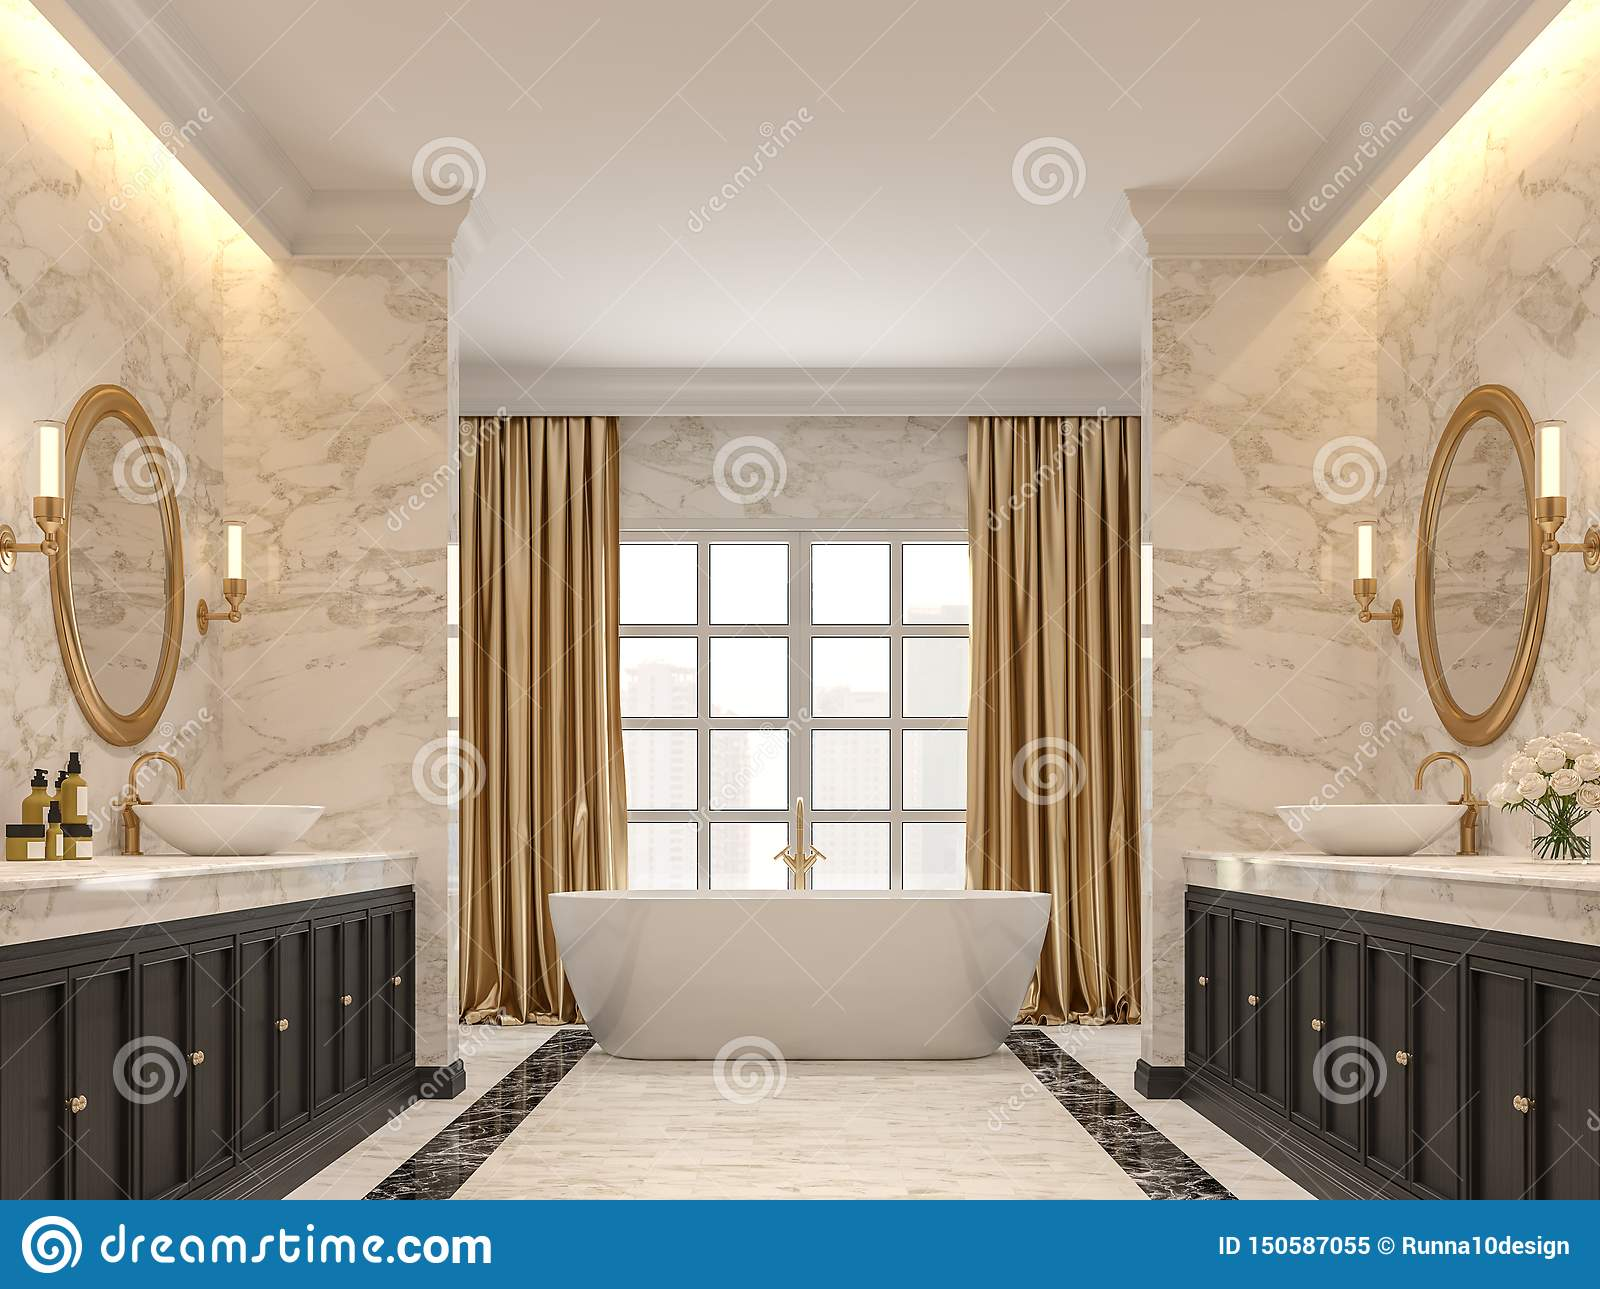 Luxurious Bathroom With White Marble Walls And Floors 3d Render Stock Illustration Illustration Of Bathroom Hidden 150587055